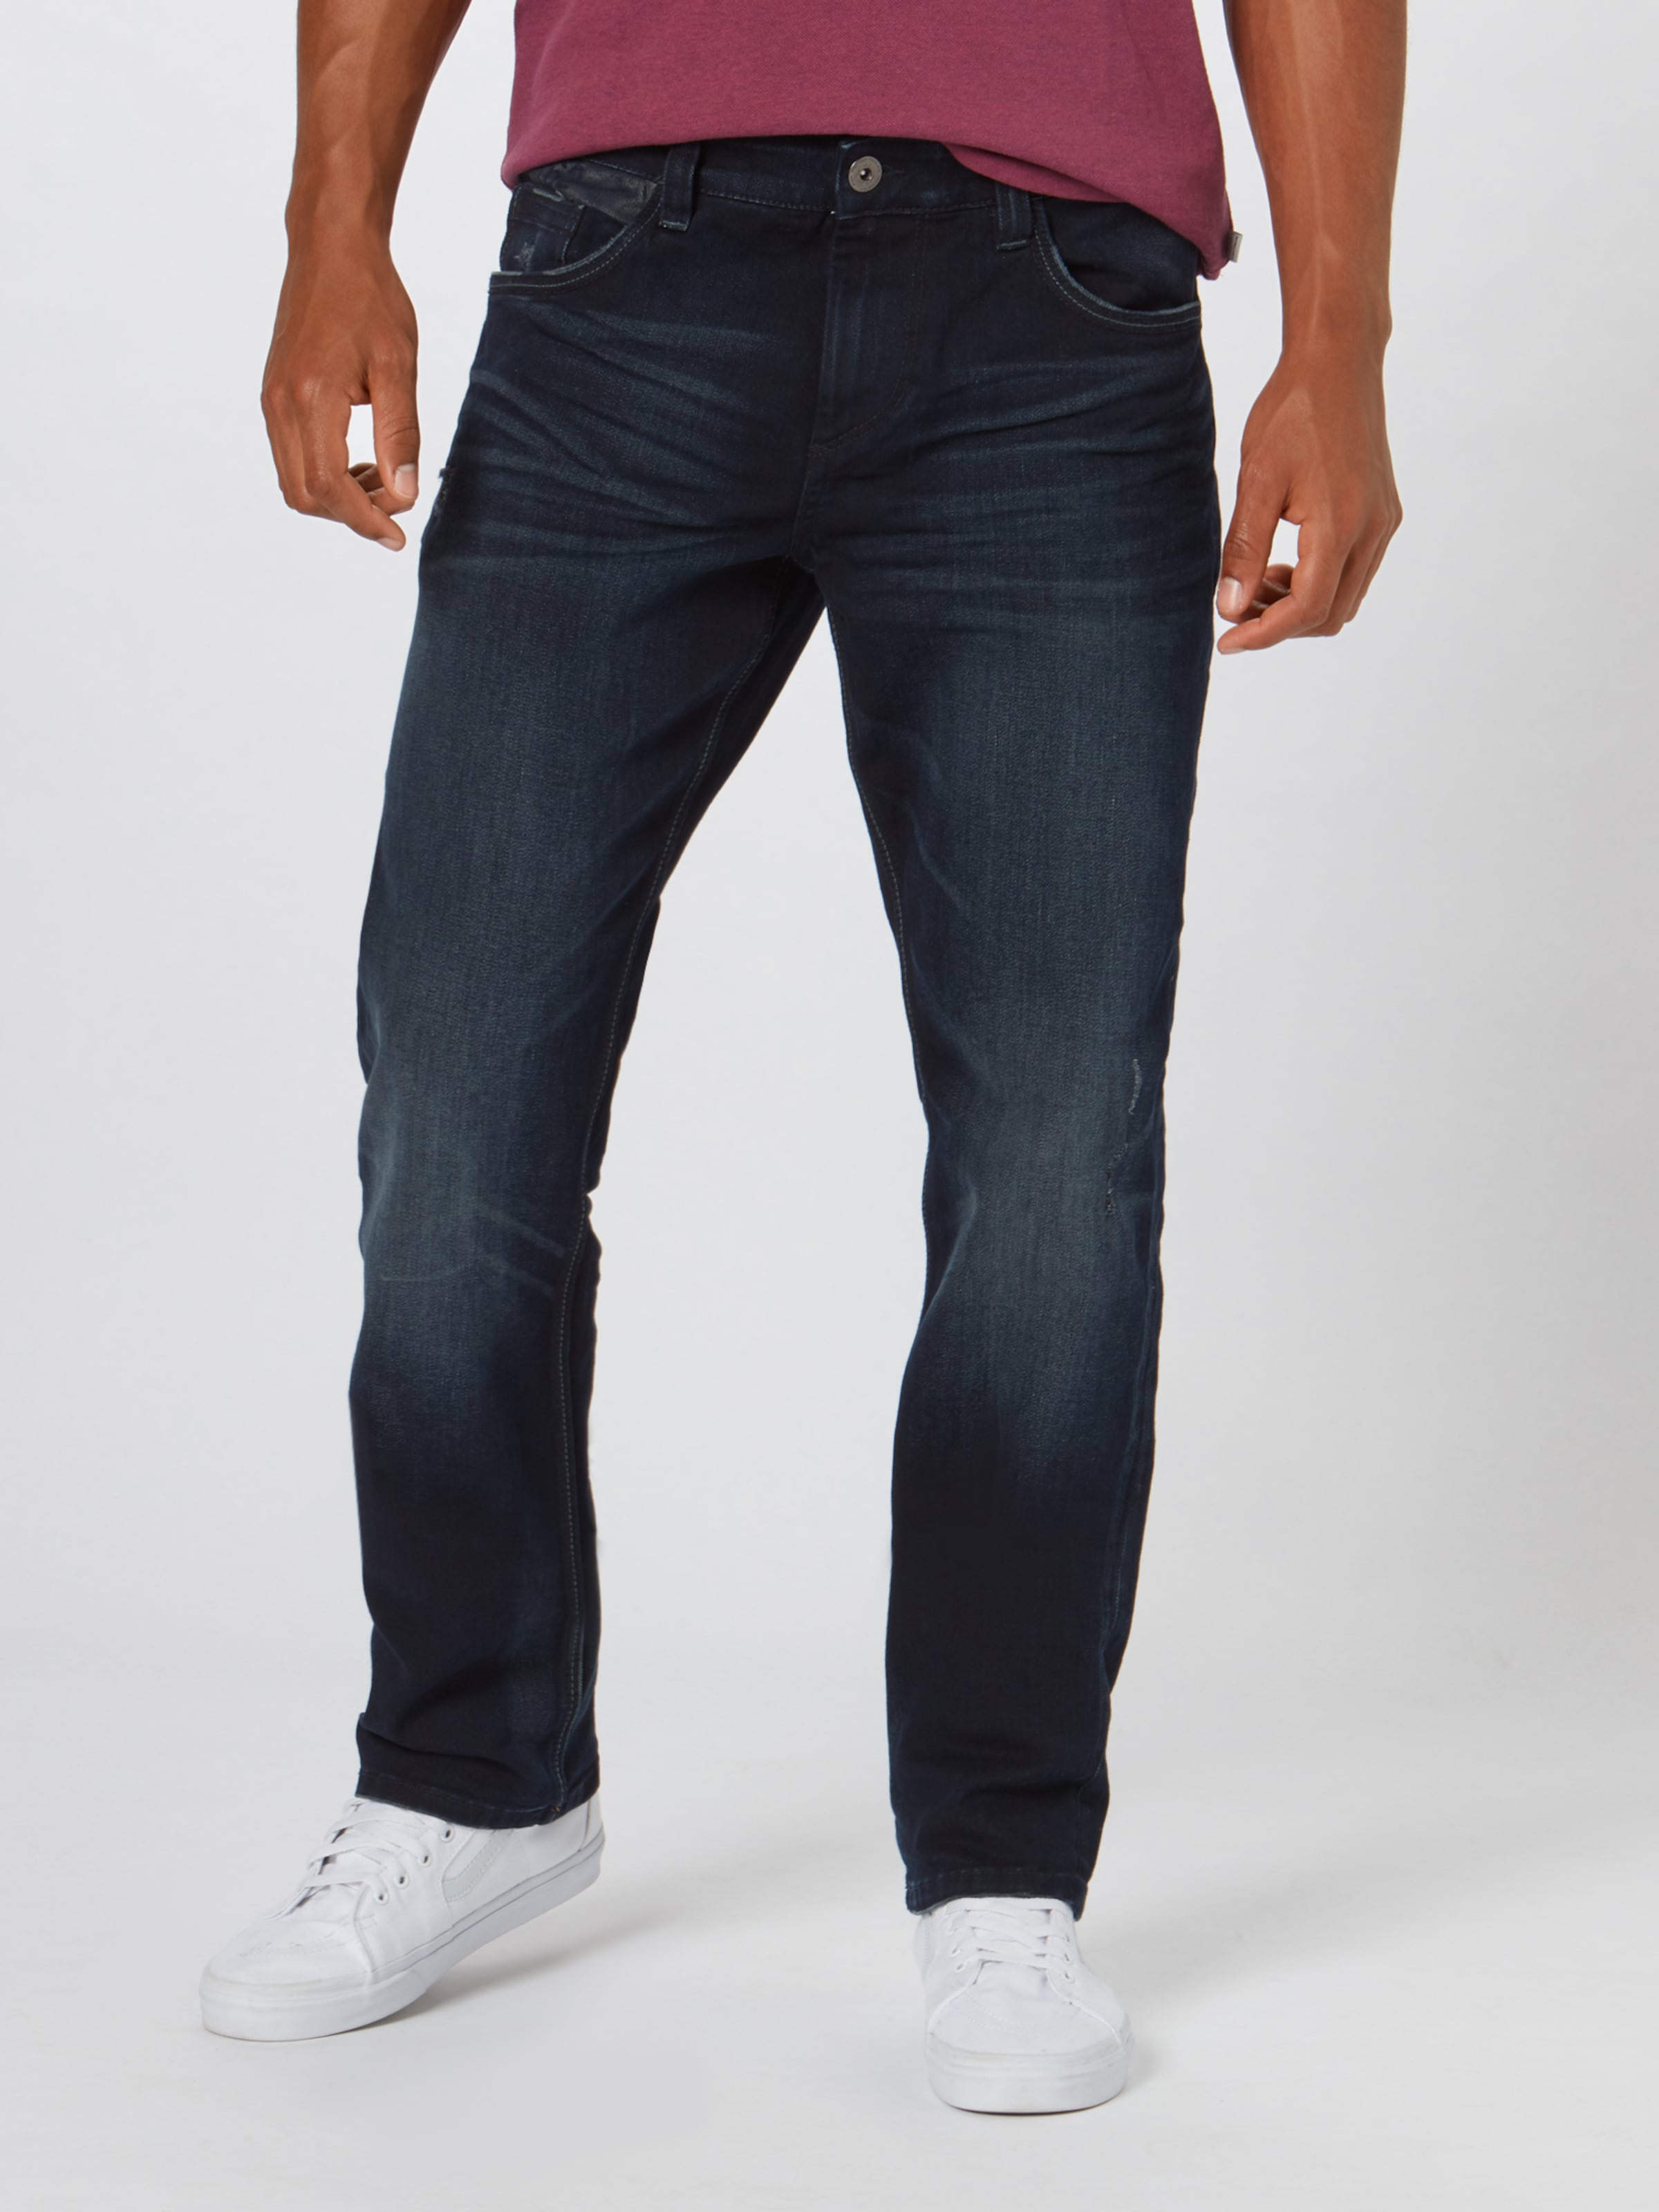 Tom 'marvin' In Navy Jeans Tailor WeE2DbH9YI